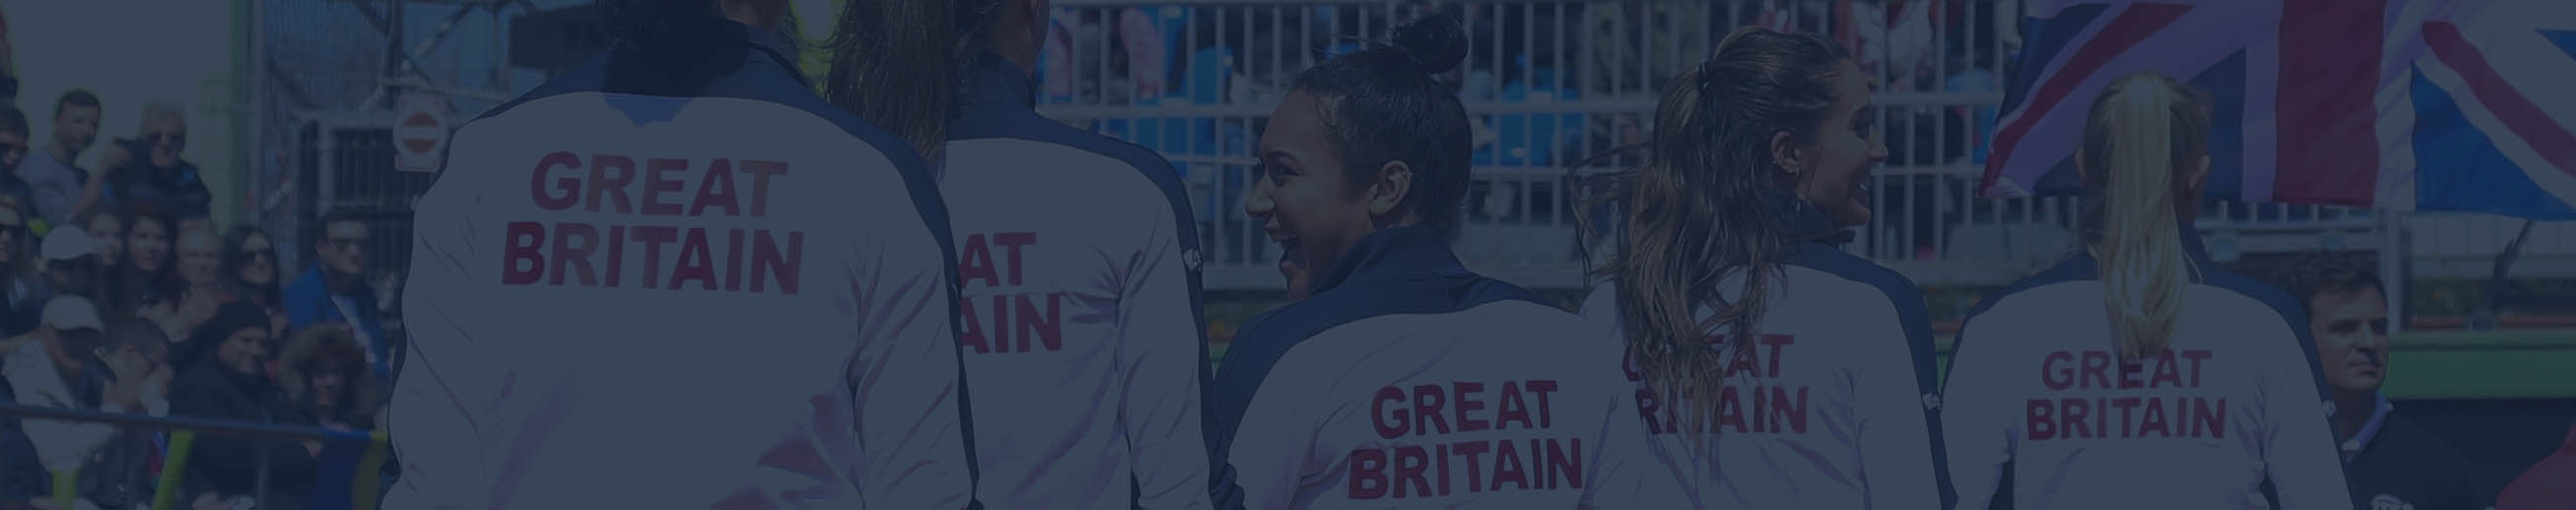 PLAY YOUR PART IN BRITISH TENNIS